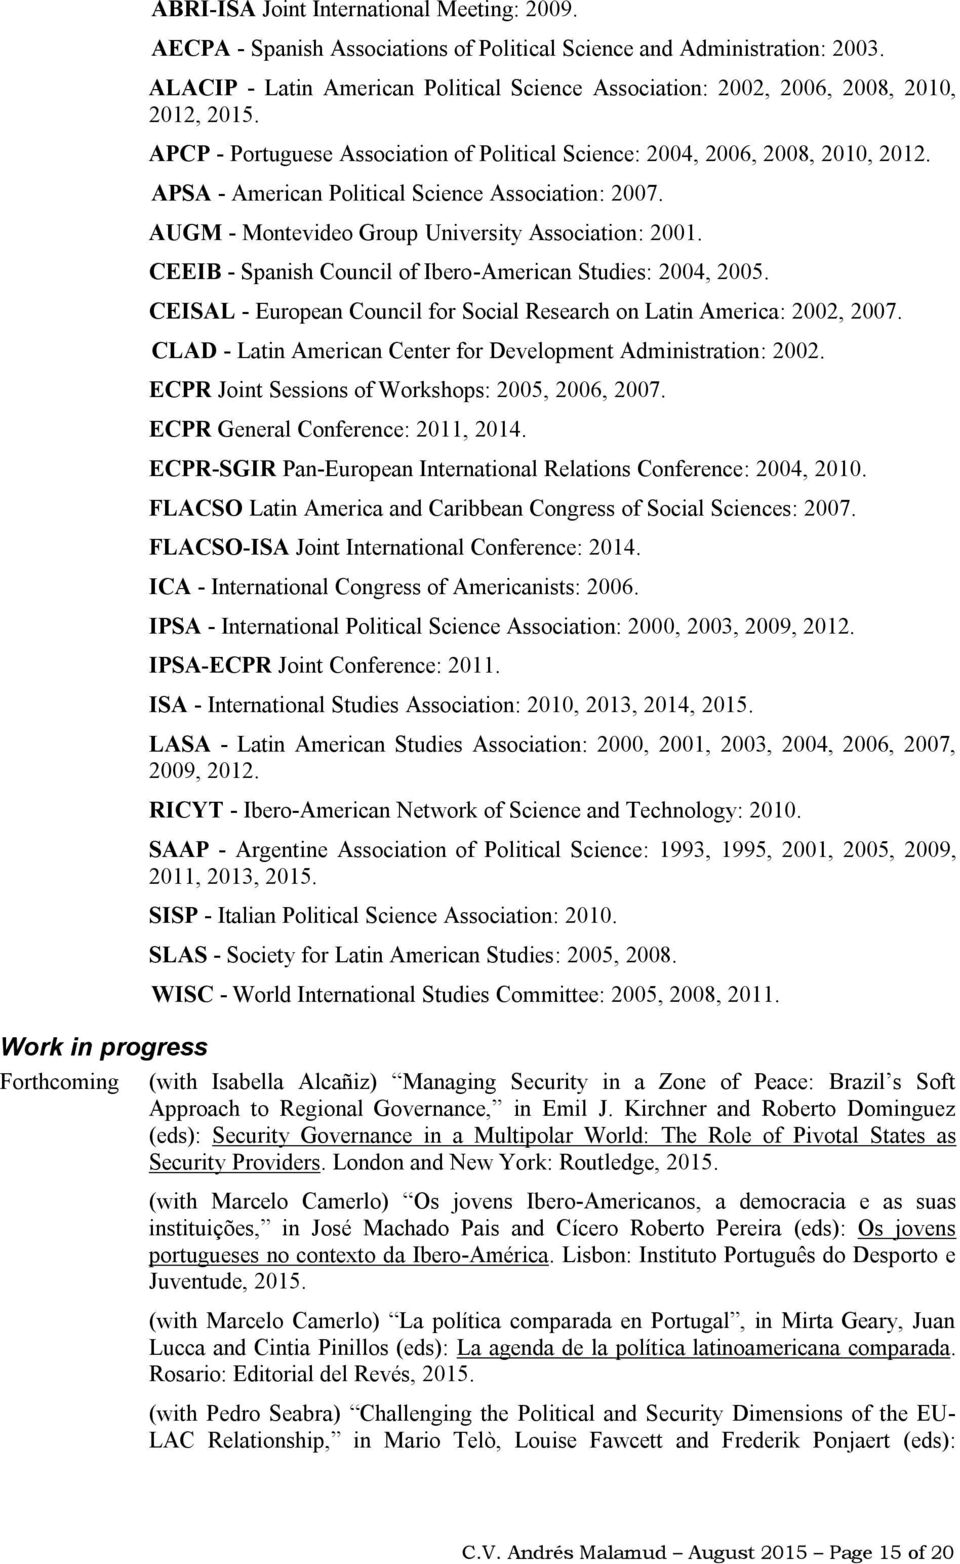 APSA - American Political Science Association: 2007. AUGM - Montevideo Group University Association: 2001. CEEIB - Spanish Council of Ibero-American Studies: 2004, 2005.